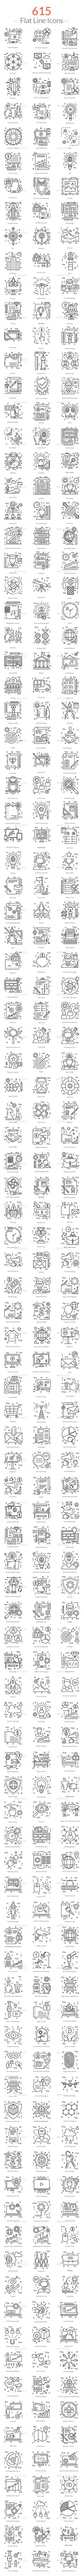 615 Flat Line Icons - Icons